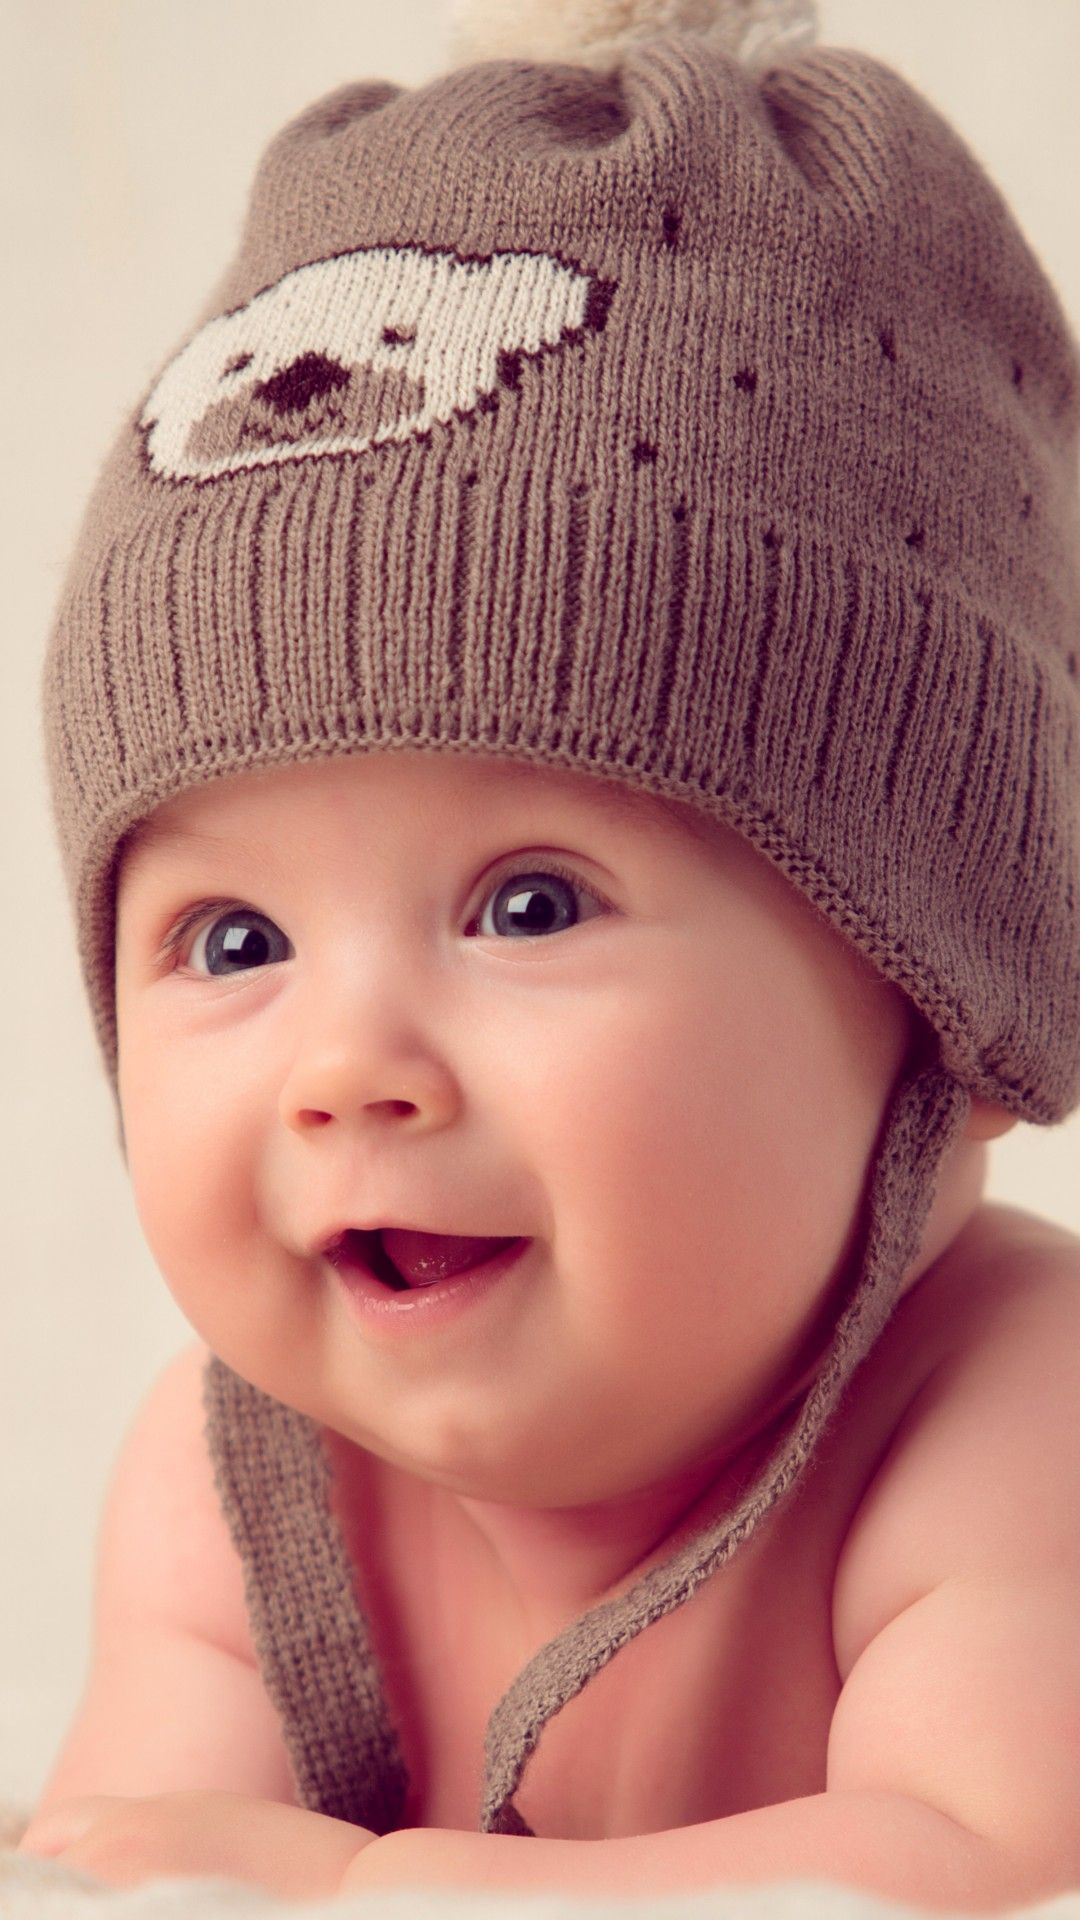 Iphone Handsome Baby Boy Cute Baby Hd Wallpaper